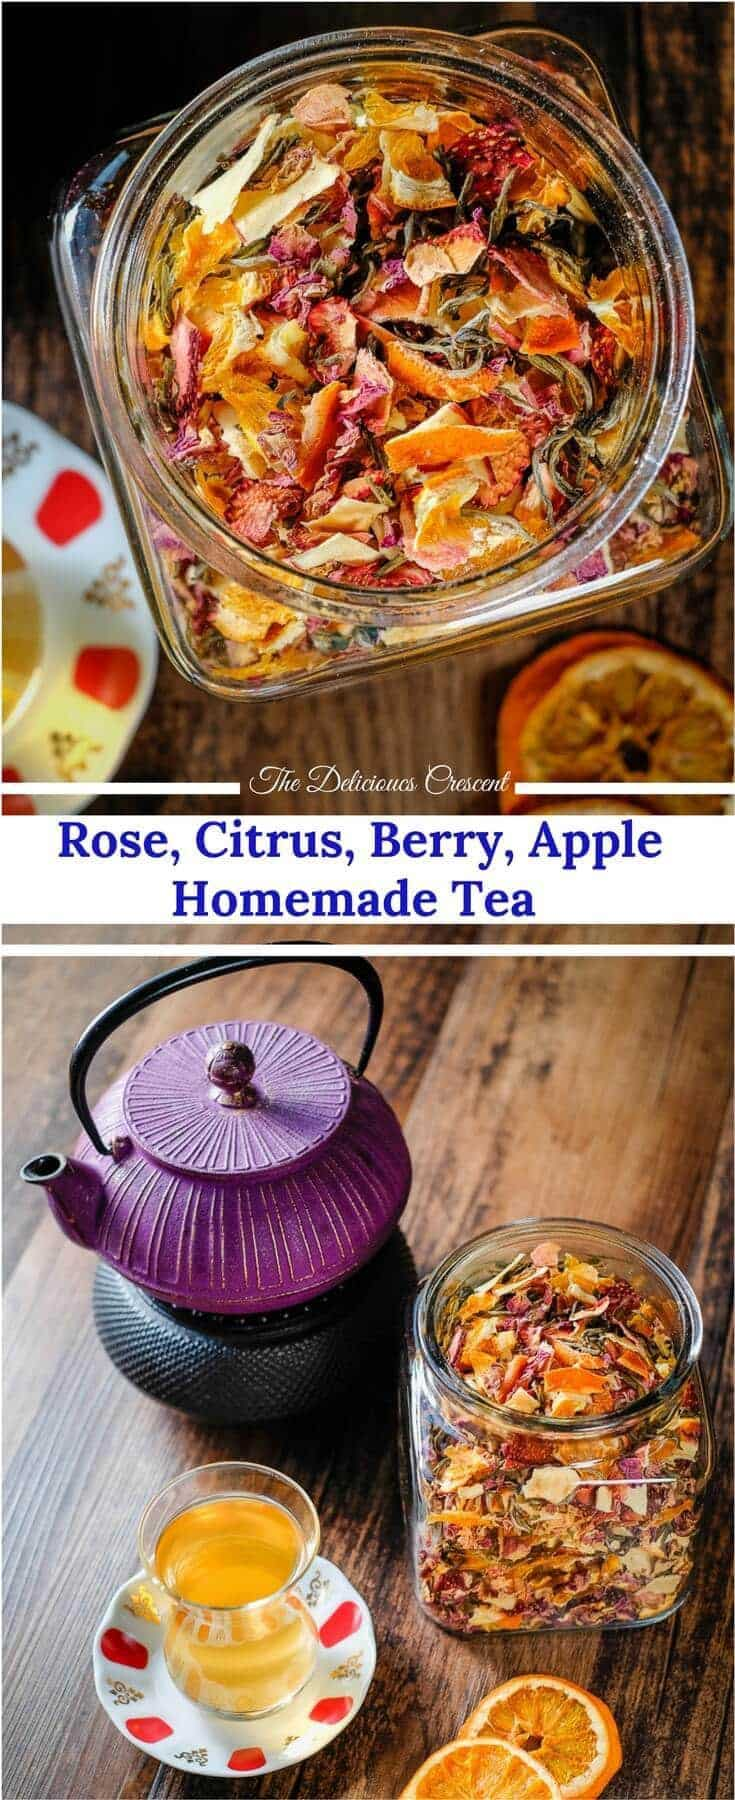 Homemade tea blend with citrus, berries, apples, roses and white tea is an invigorating infusion of sweet fruity flavors and the lively taste of antioxidant rich white tea.